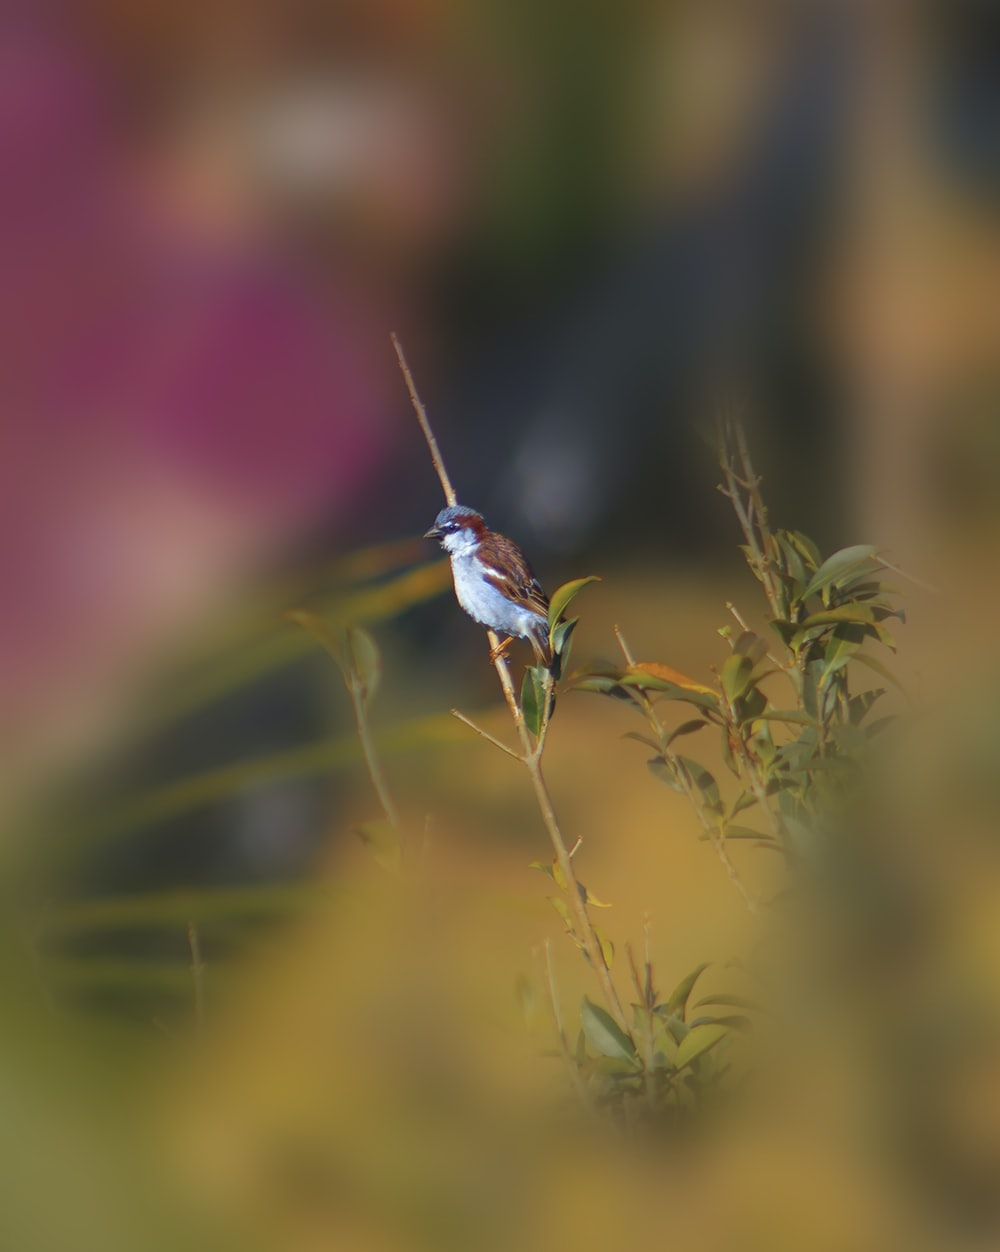 brown and white bird on plant